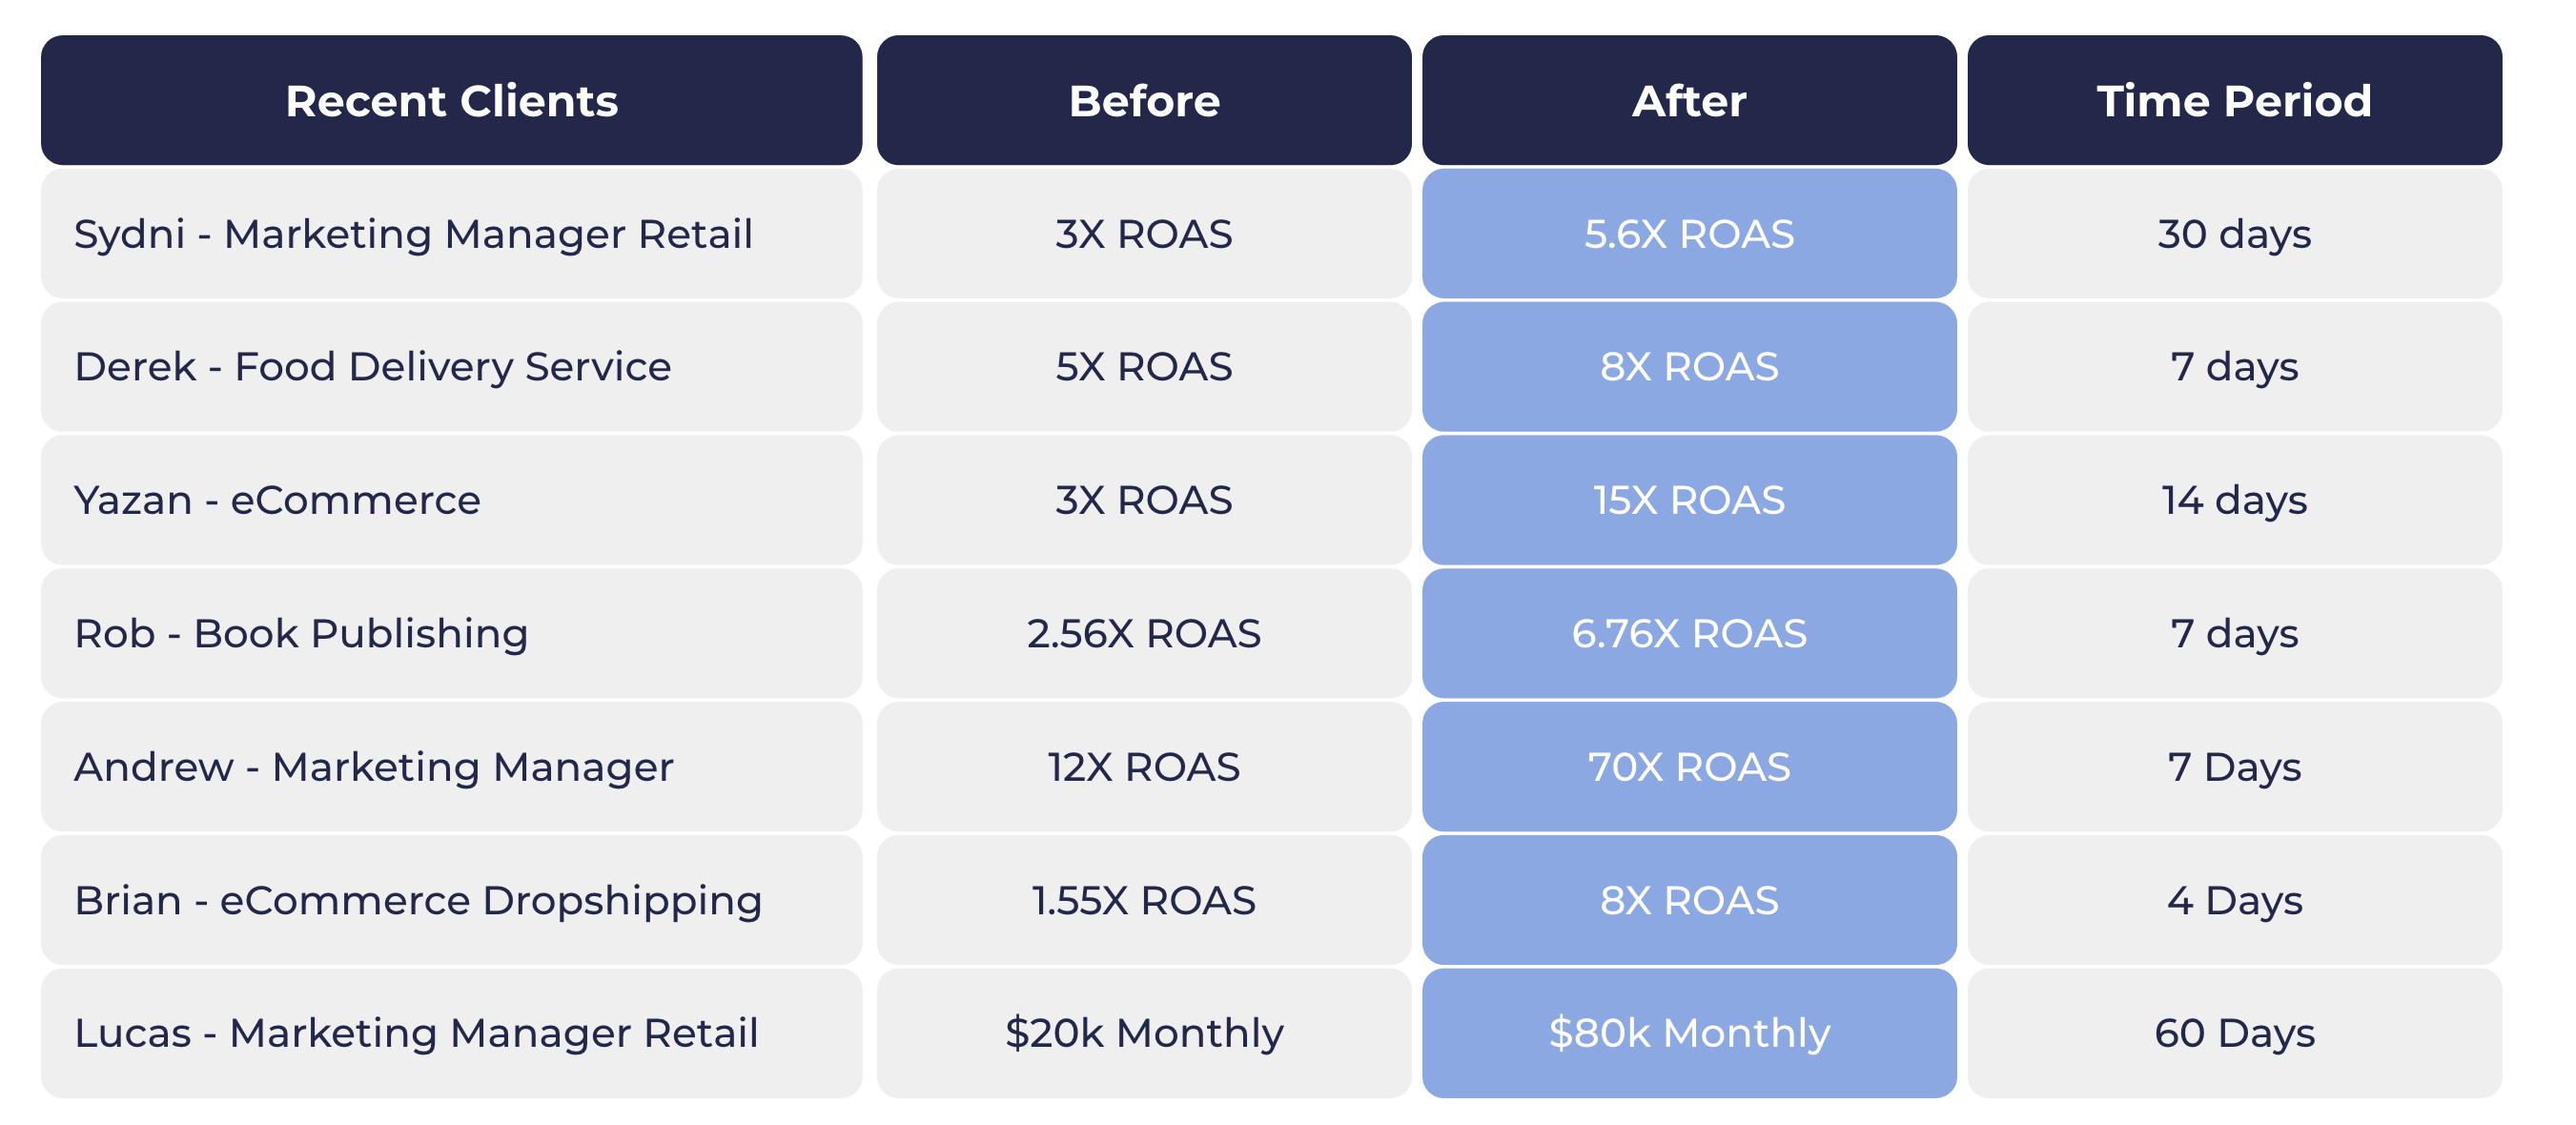 Facebook Ad results and case study